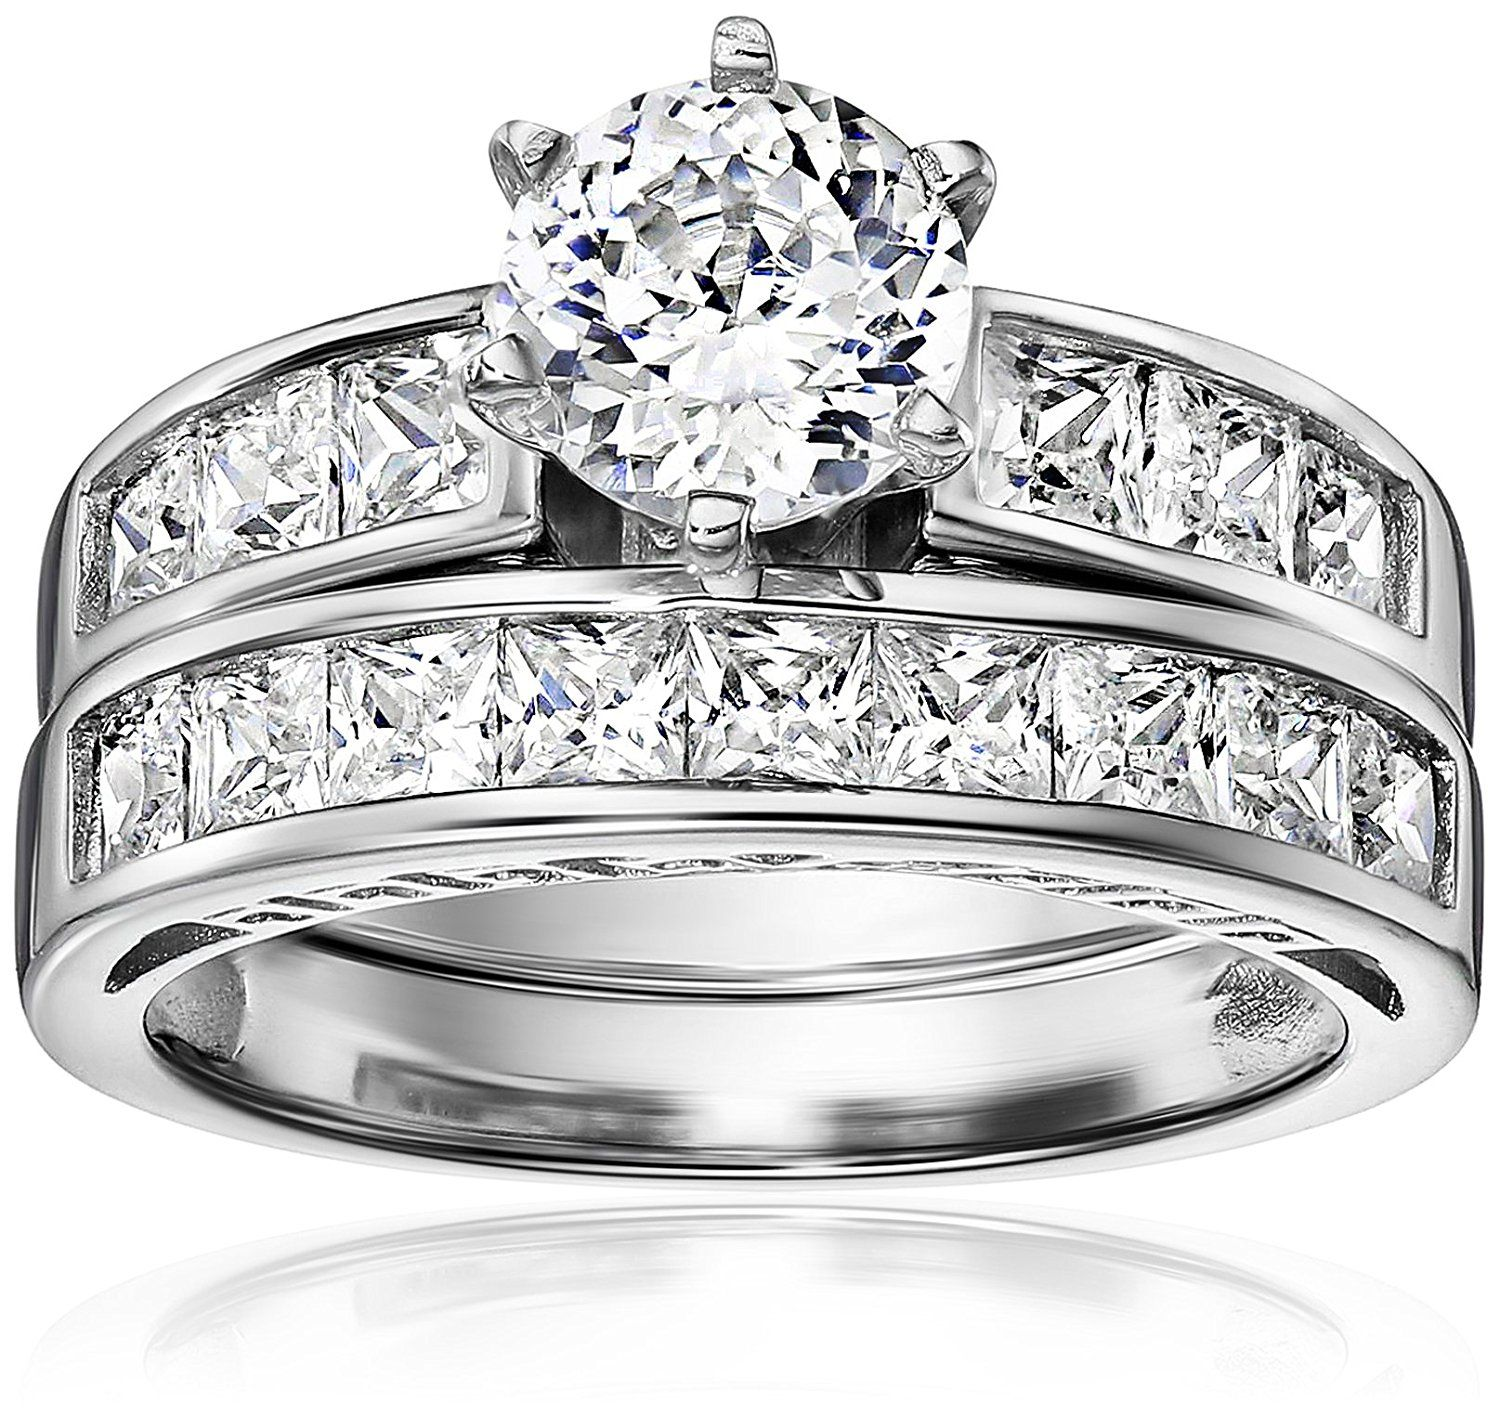 Platinum Plated Sterling Silver and Cubic Zirconia Bridal Set